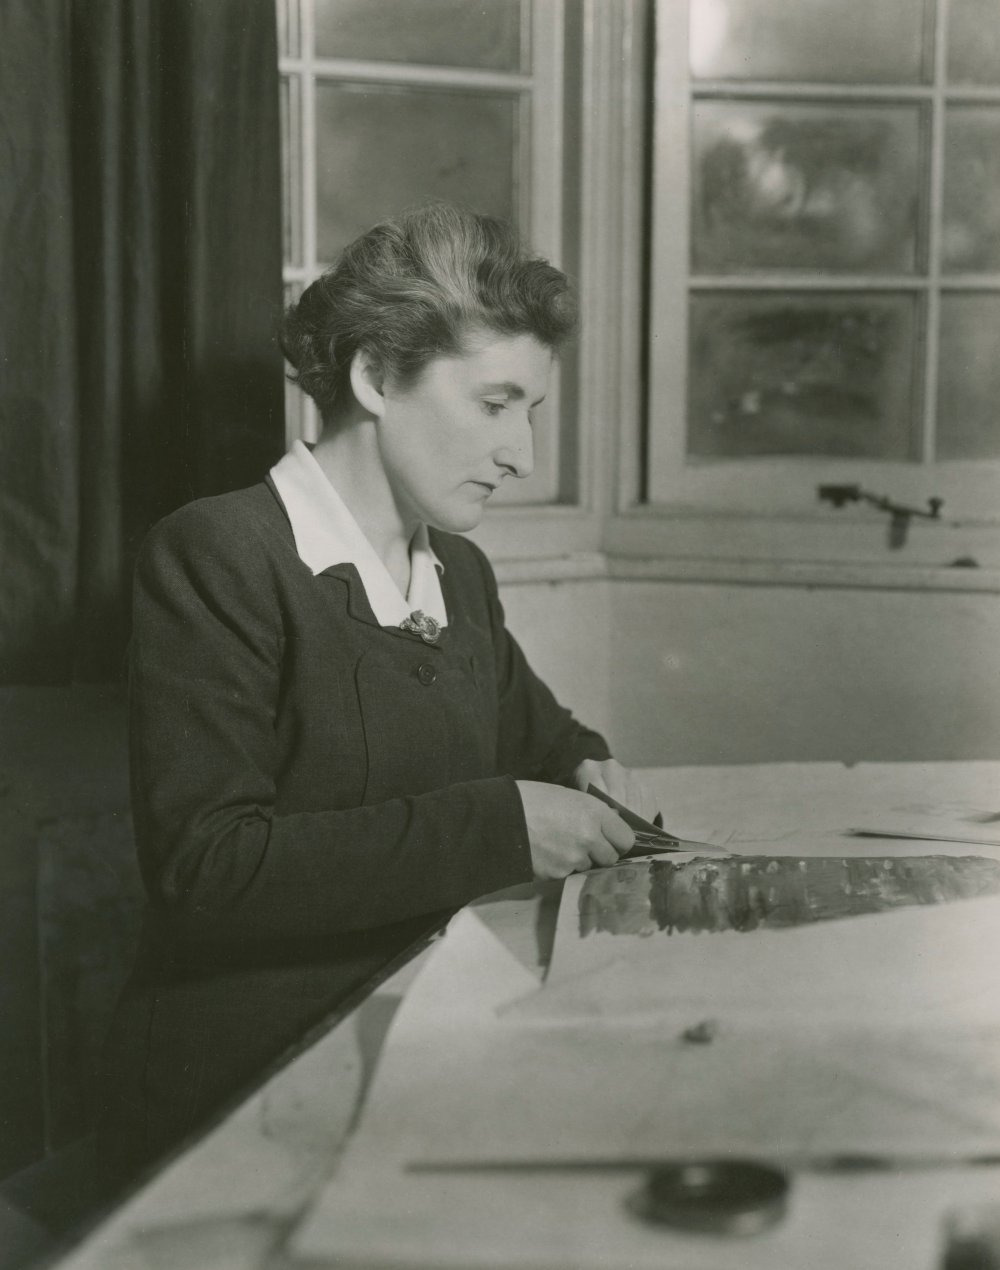 <strong>Carmen Dillon</strong>, art director, at work in her studio in 1949. Dillon is acknowledged as the first female art director to work at a British film studio.